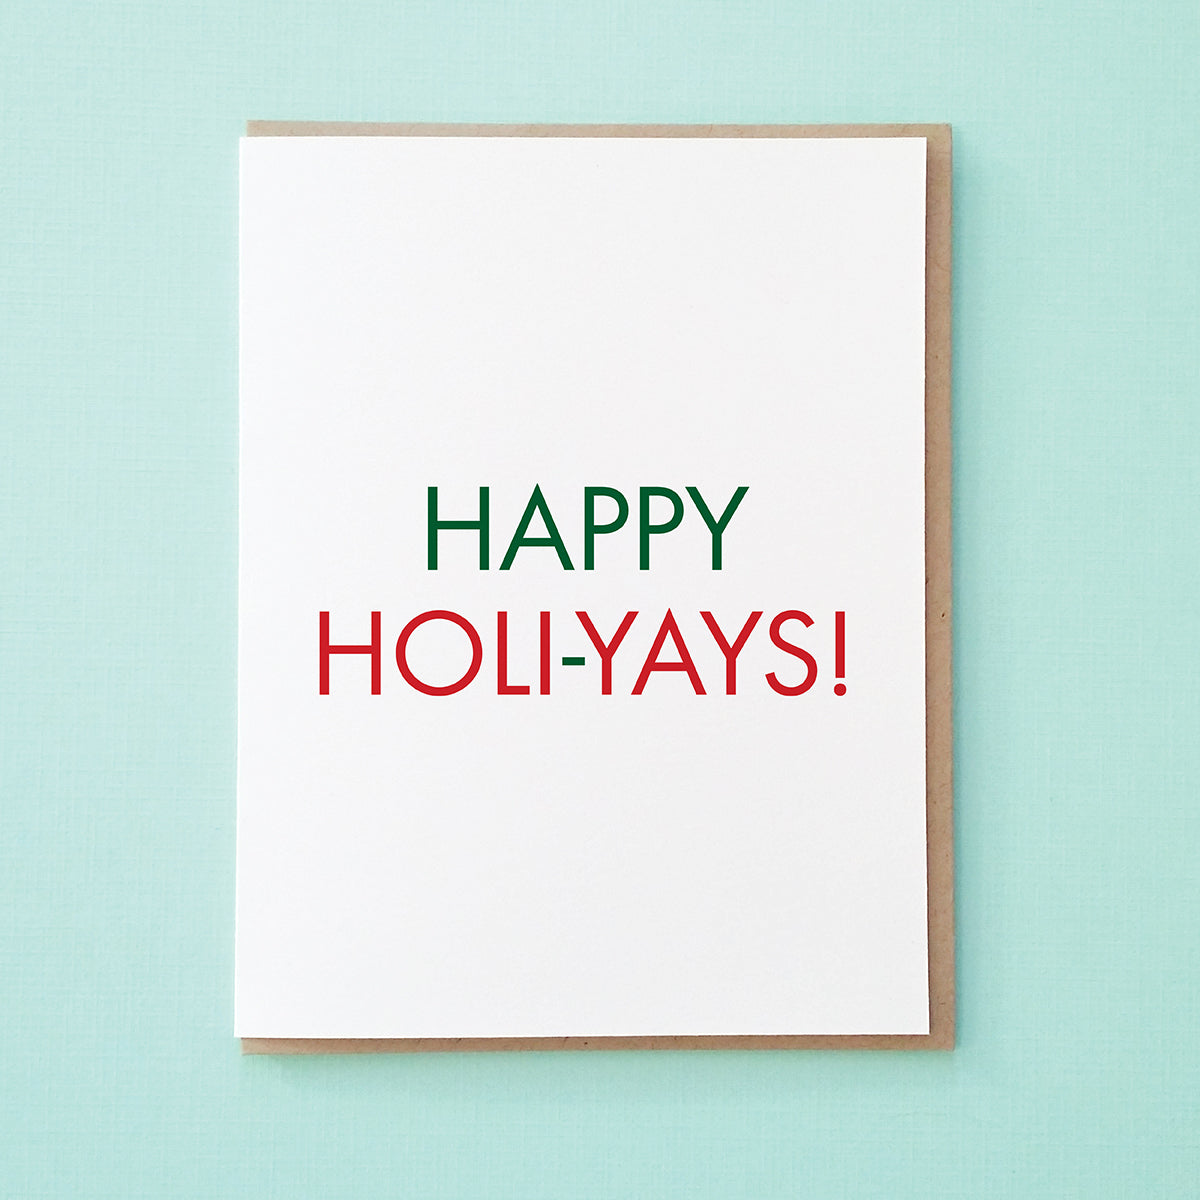 Funny Holiday Card. Funny Holiday Card. Funny Christmas Card. Funny Set of Holiday Cards